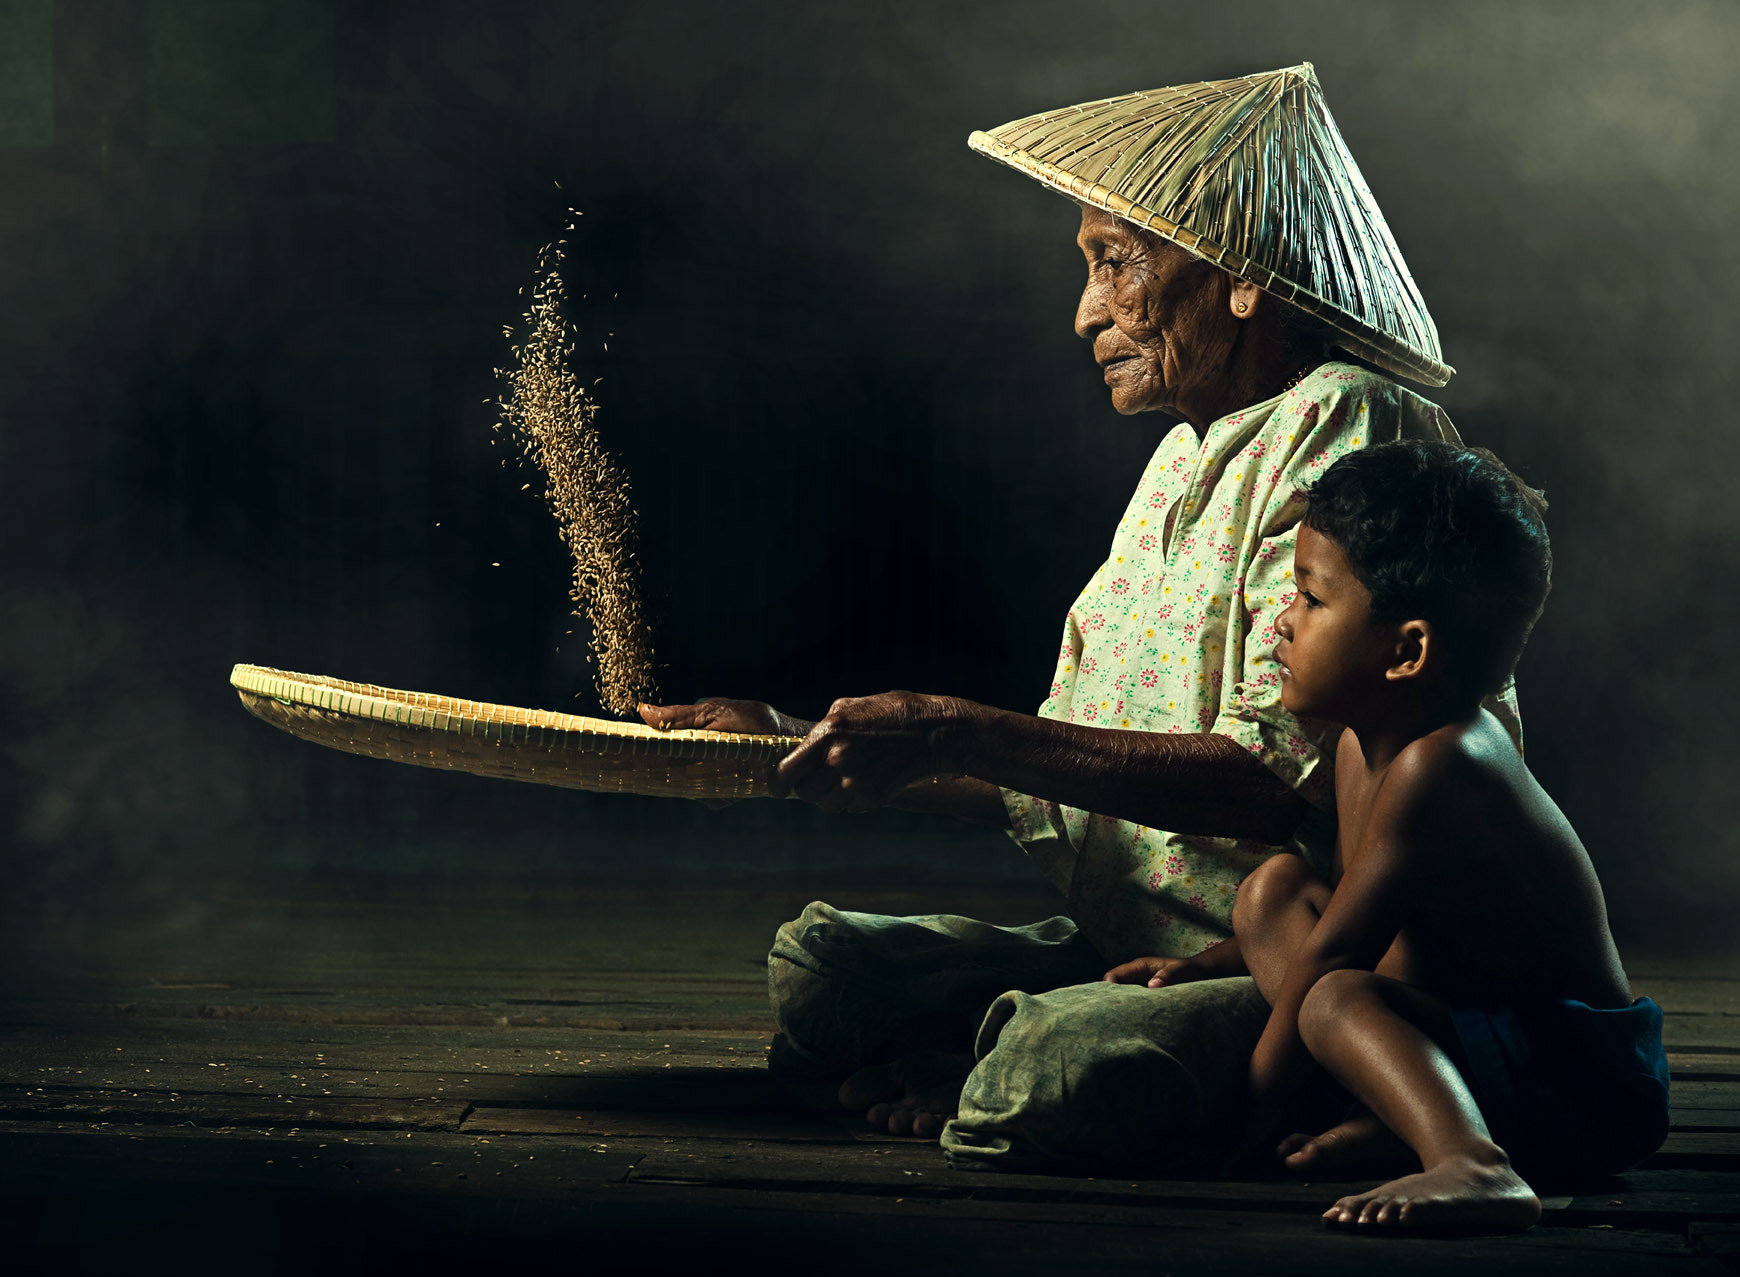 Photograph grandmother & grandson by abe less on 500px